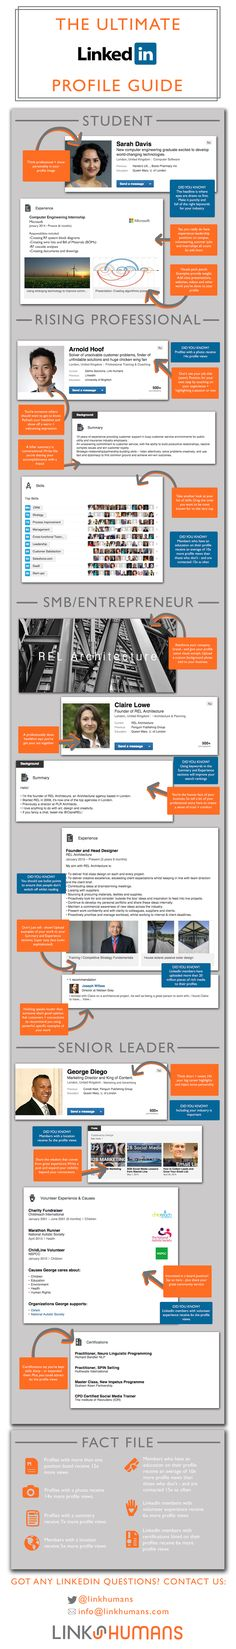 LinkedIn-Infographic-7th-October4 (1)